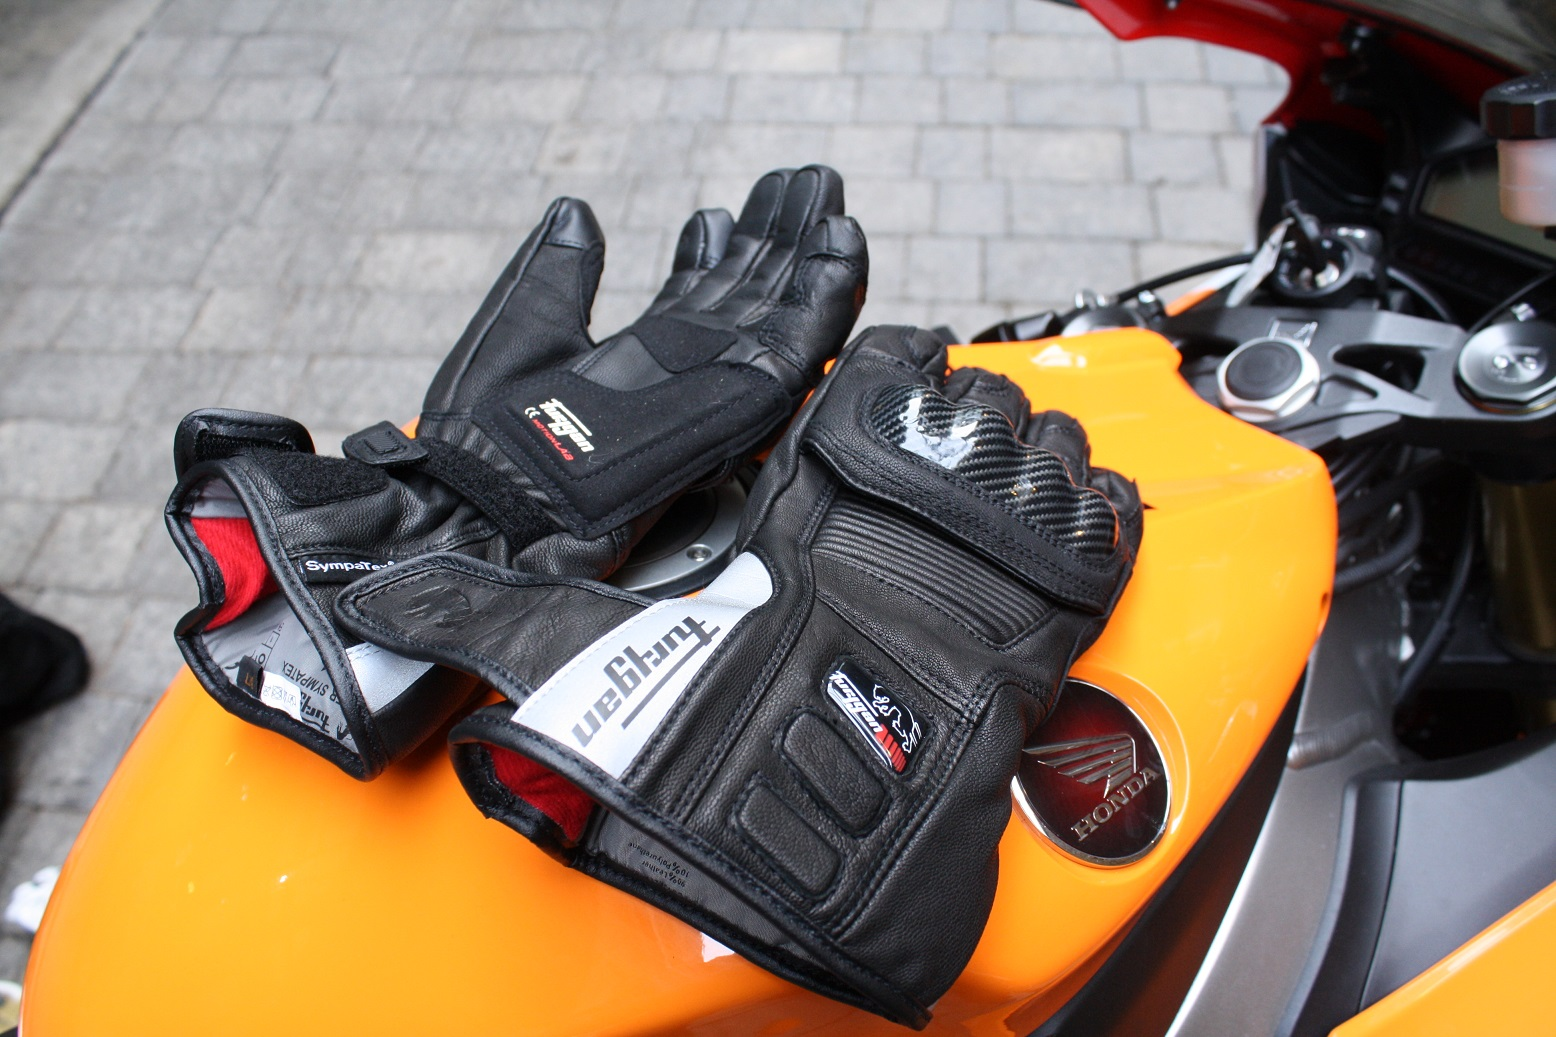 Furygan Blazer Sympatex gloves